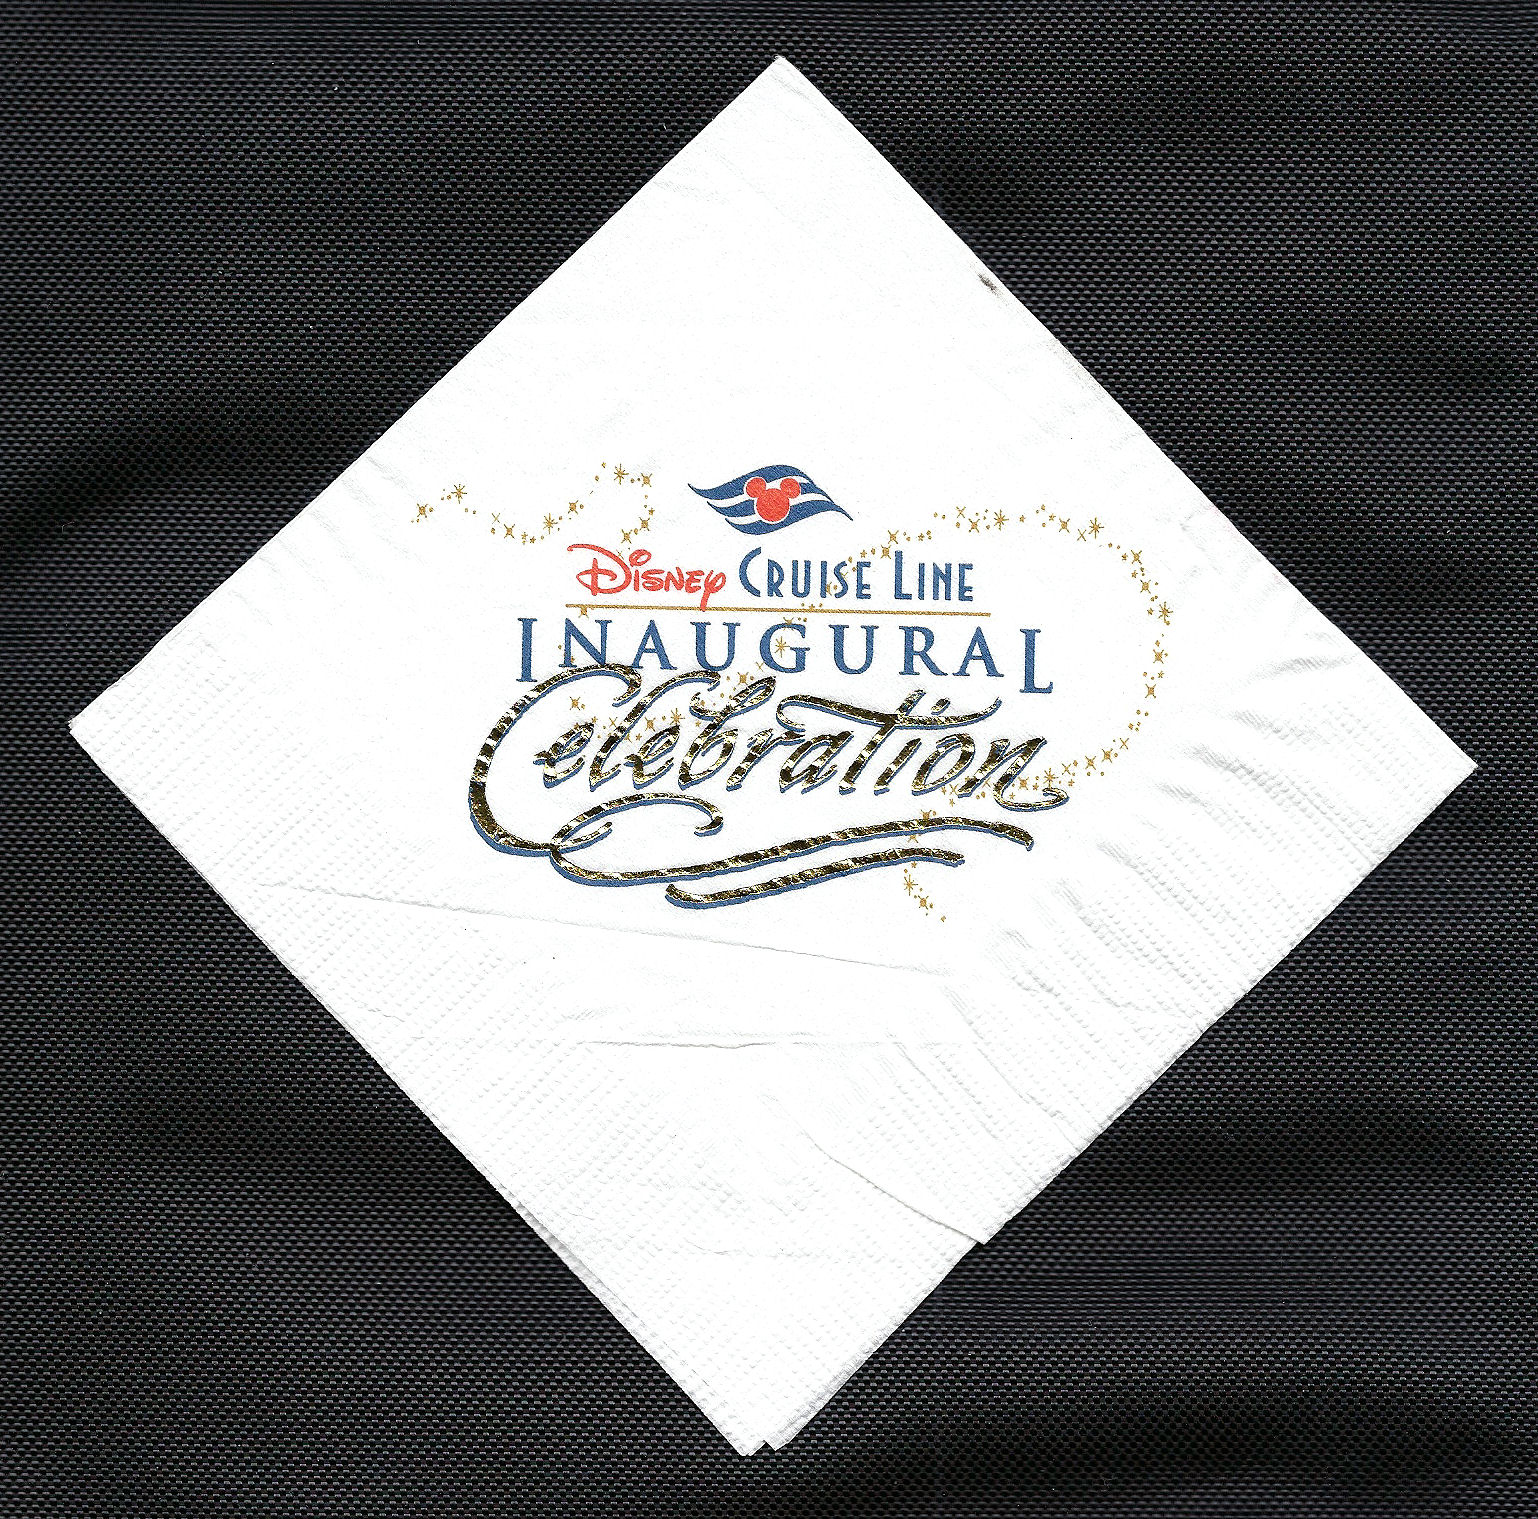 A napkin honoring the Disney Cruise Line's inaugural celebration.